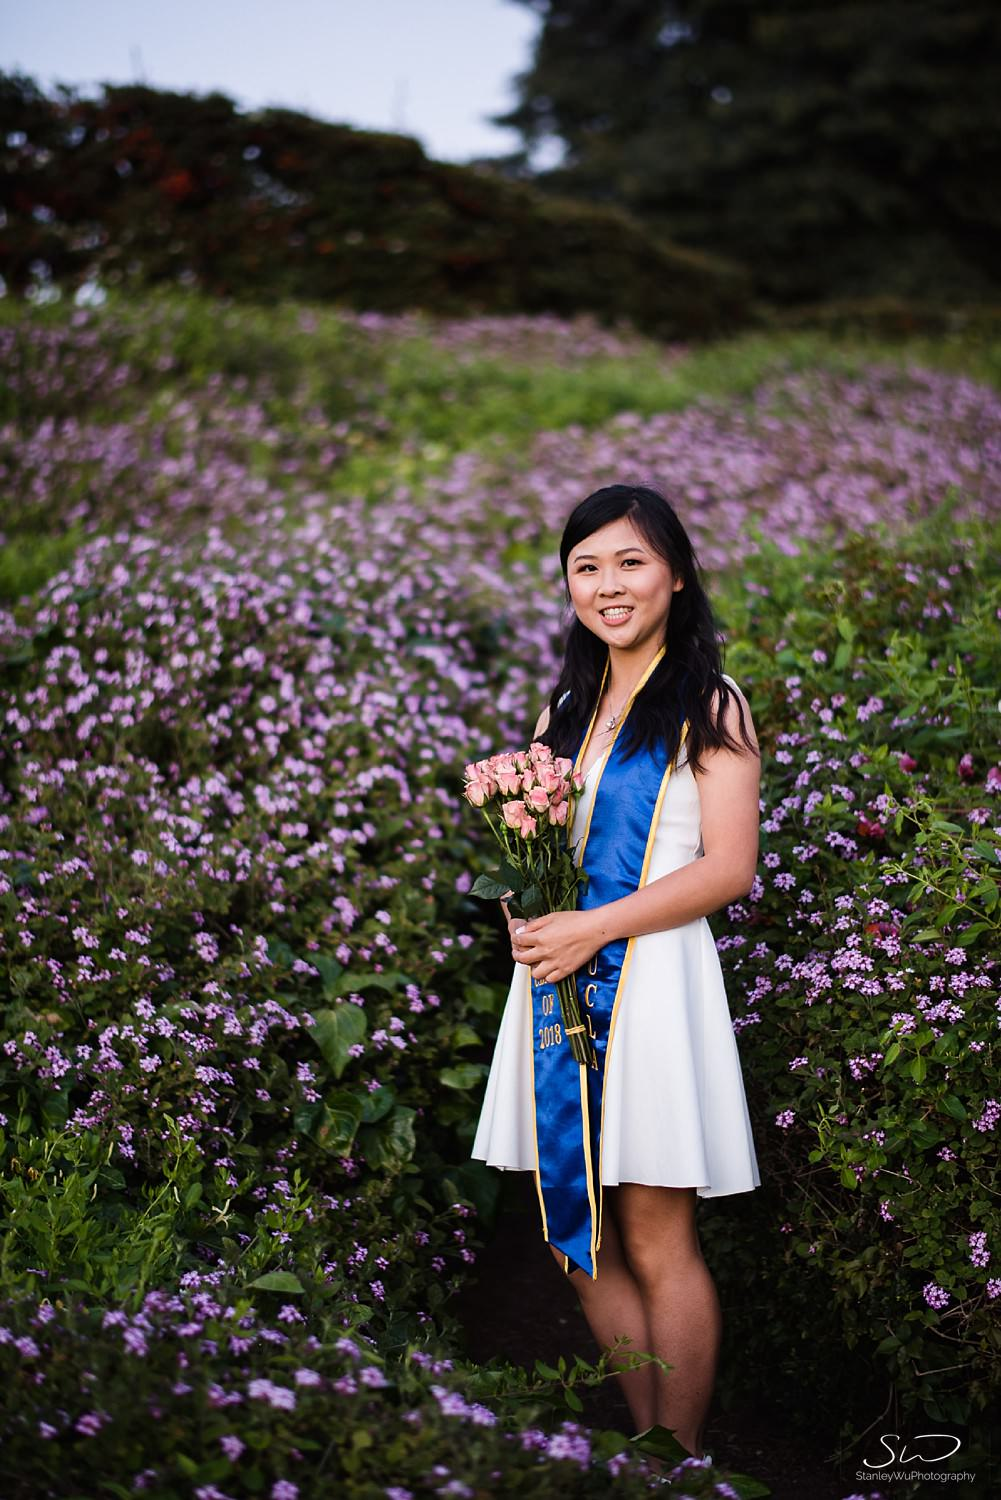 ucla-graduation-portraits_0023.jpg